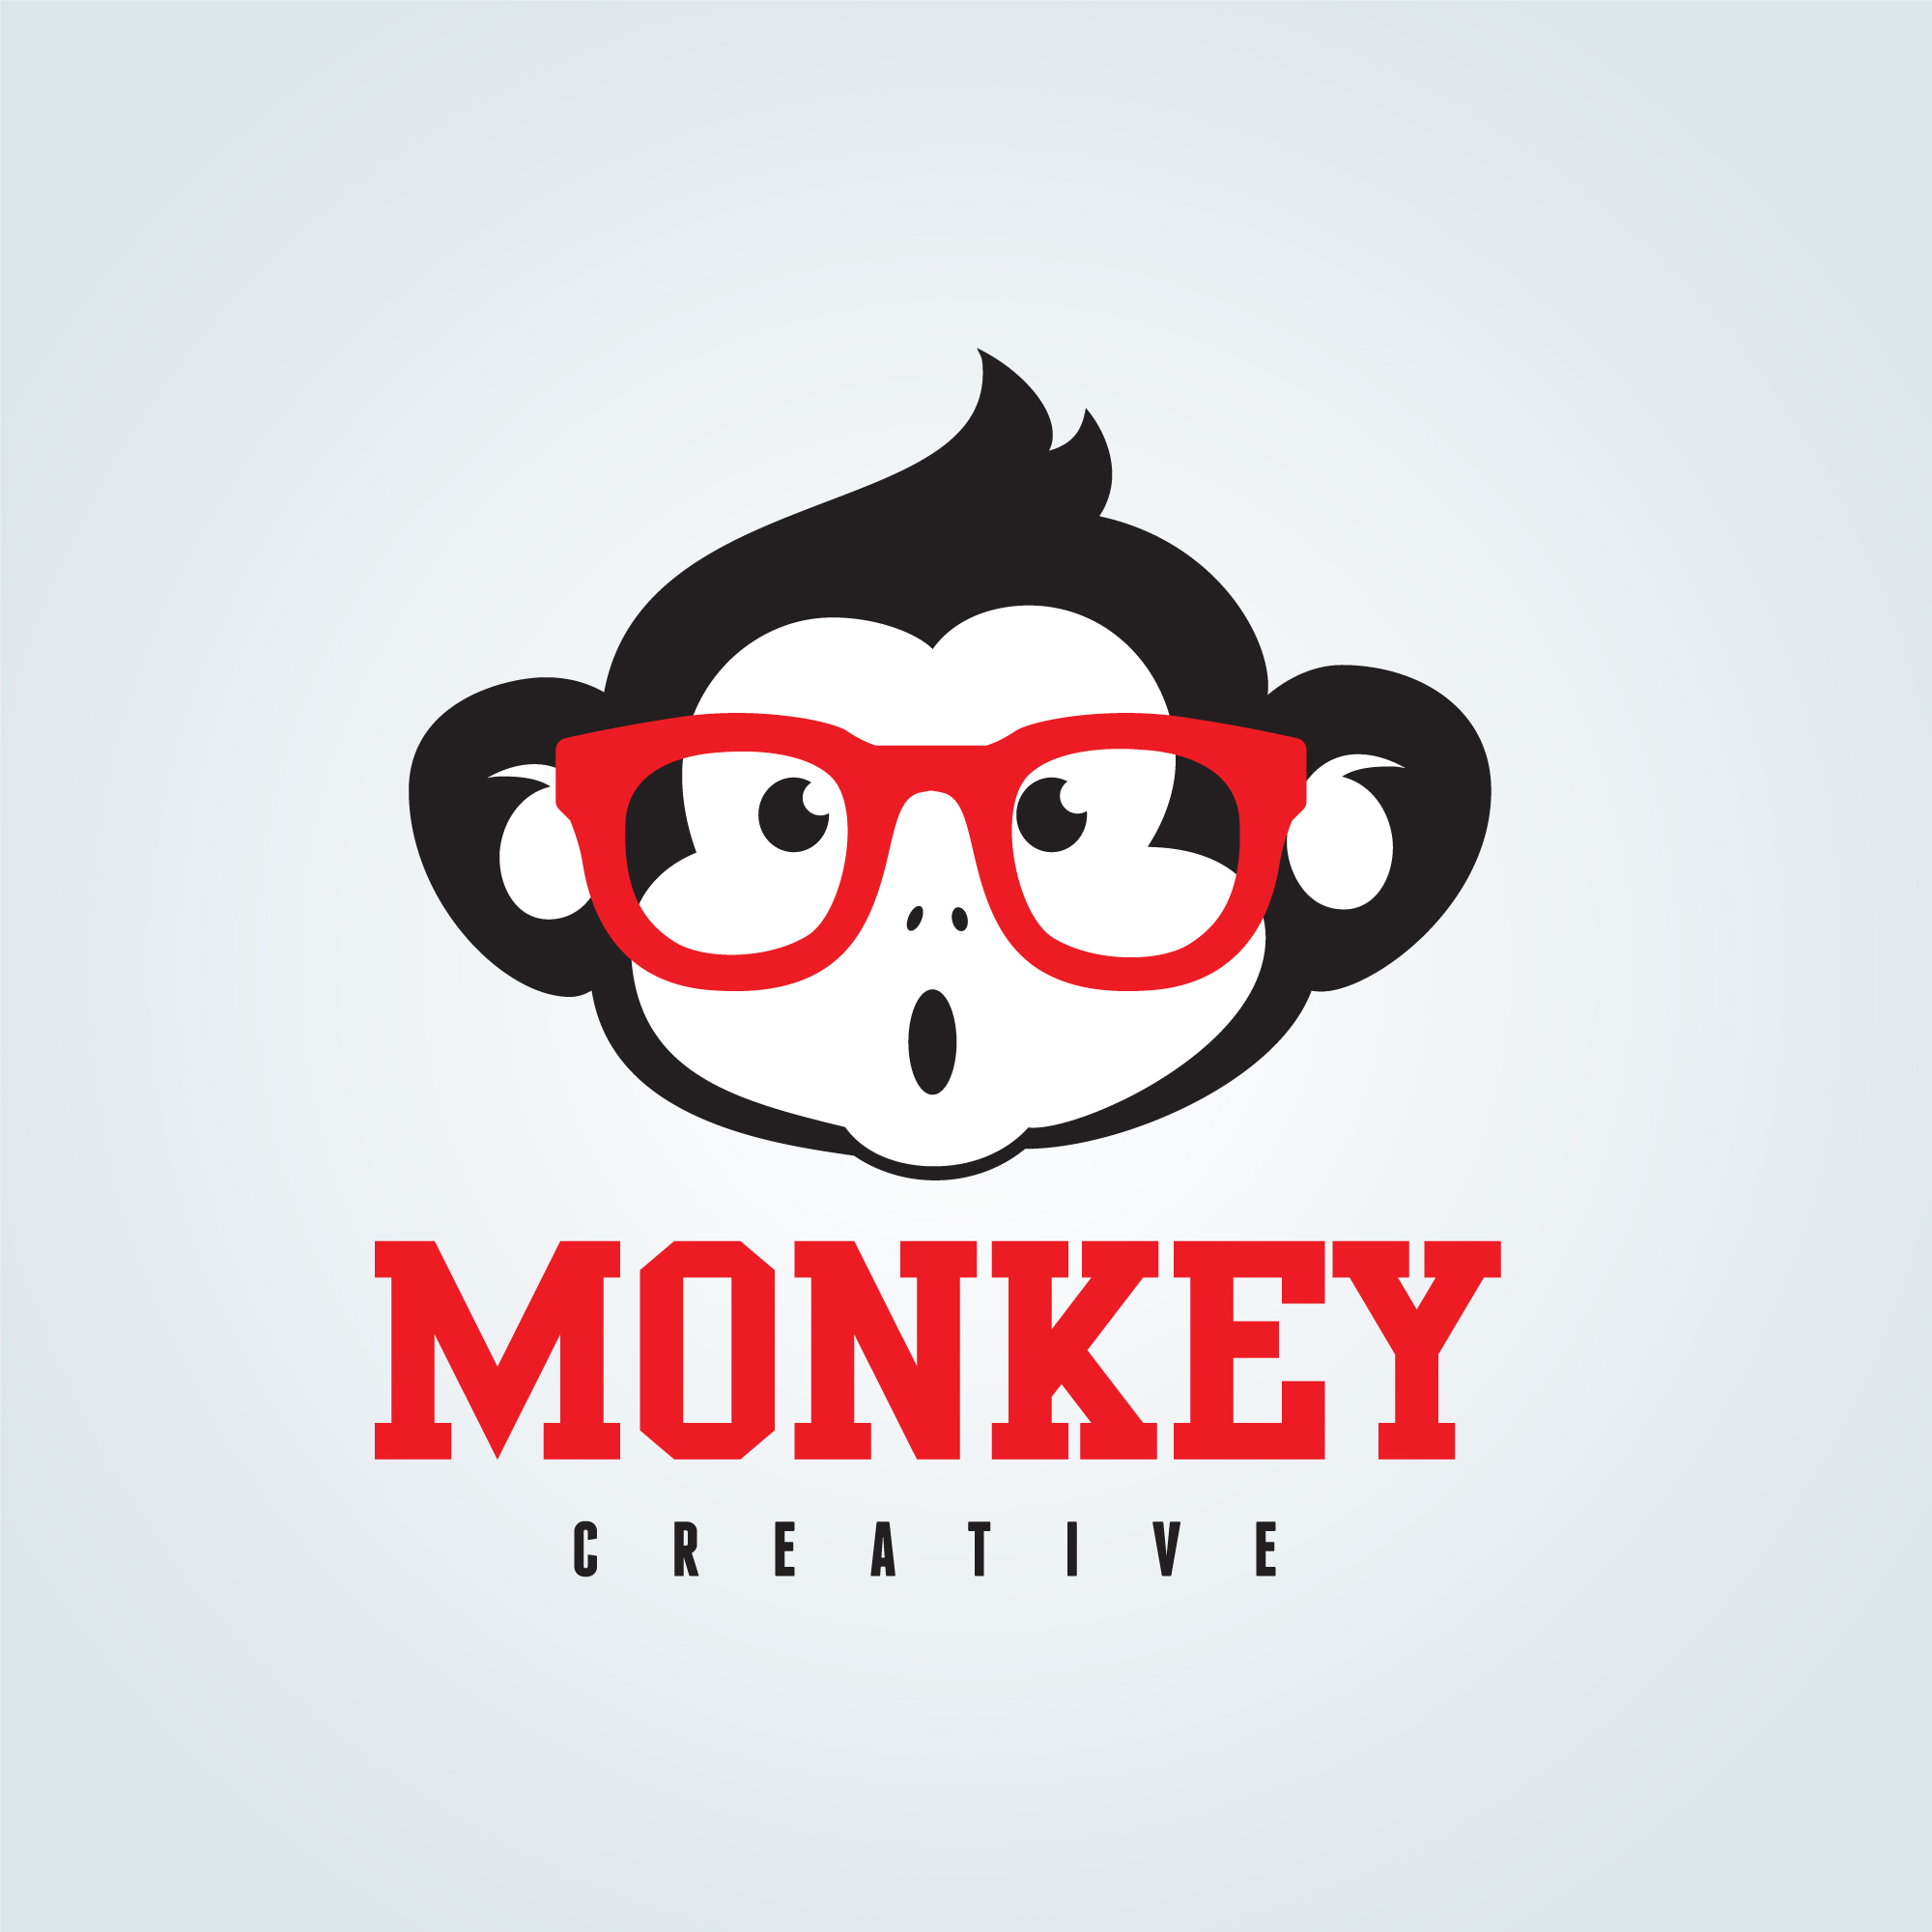 Cute monkey with glasses